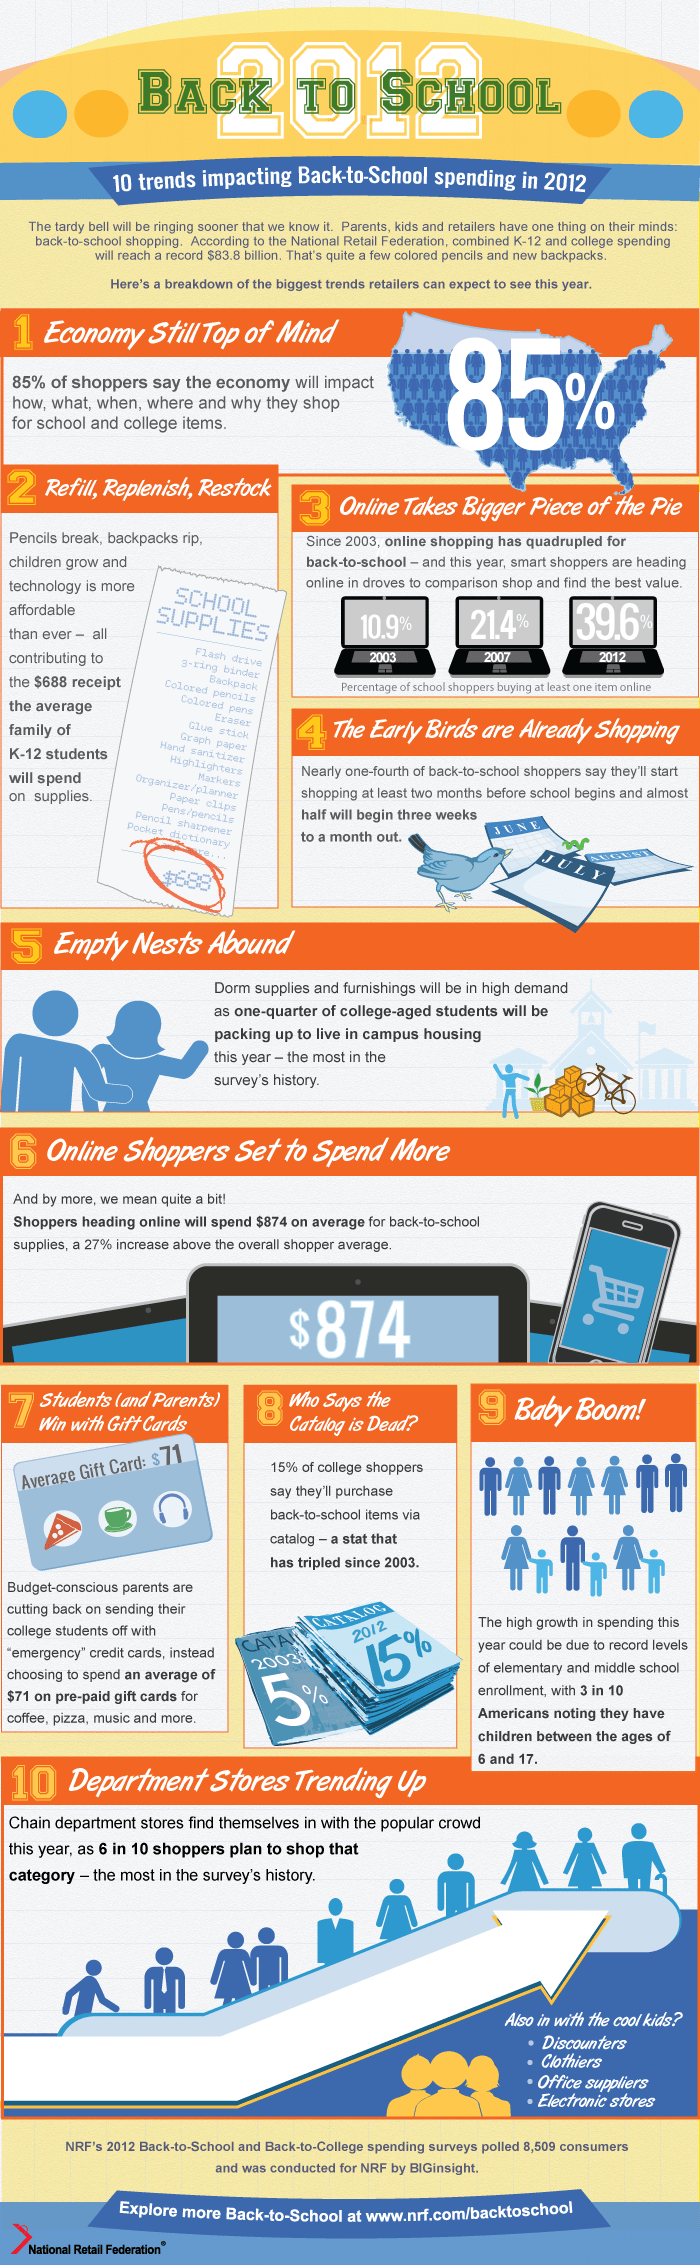 NRF Back to School Shopping Trends - Infographic